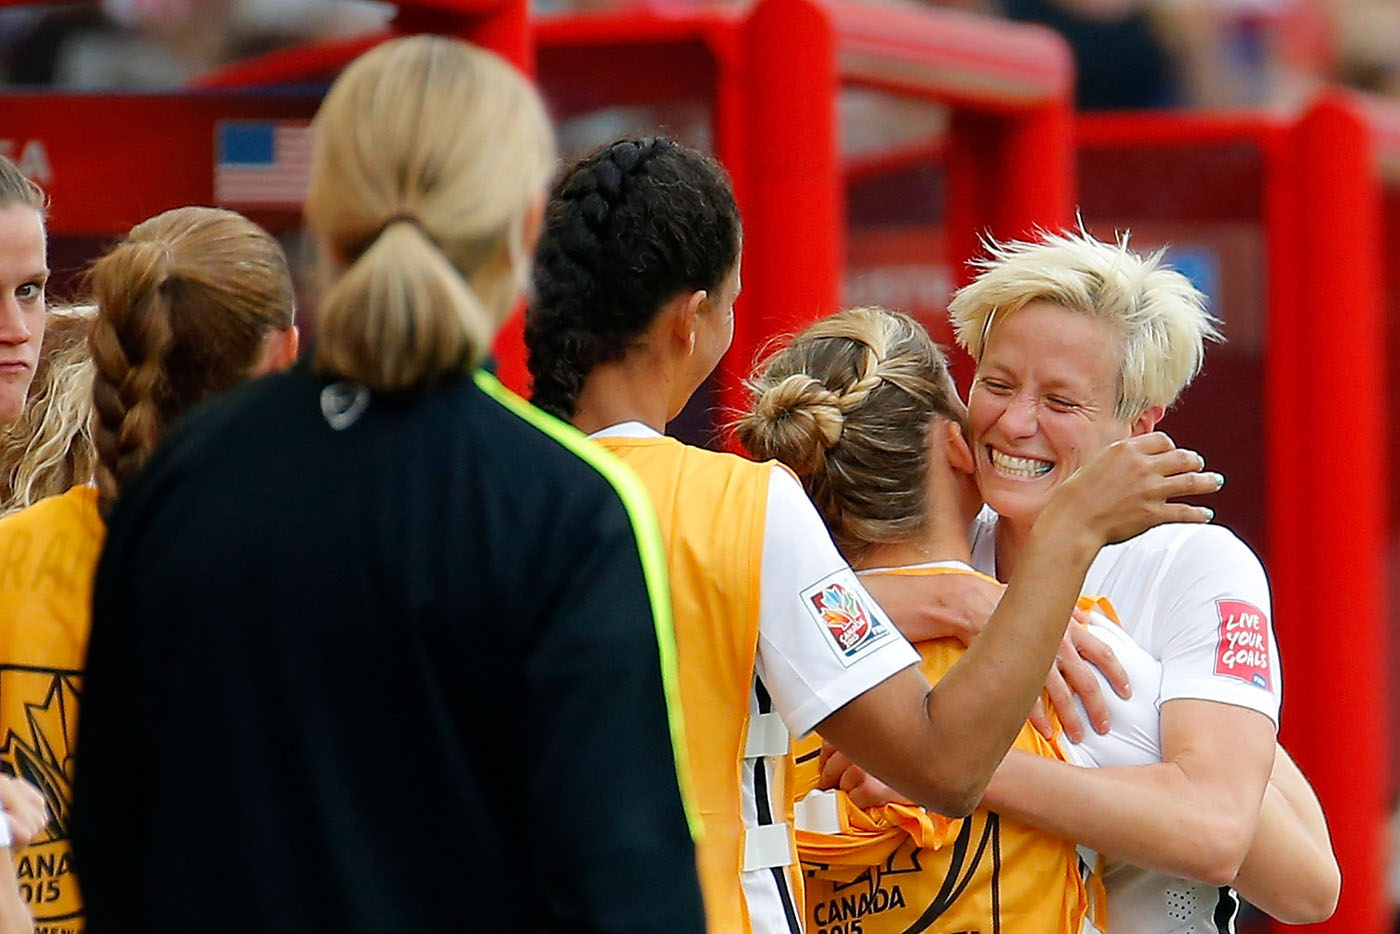 U.S. defeats Australia in 2015 Women's World Cup match